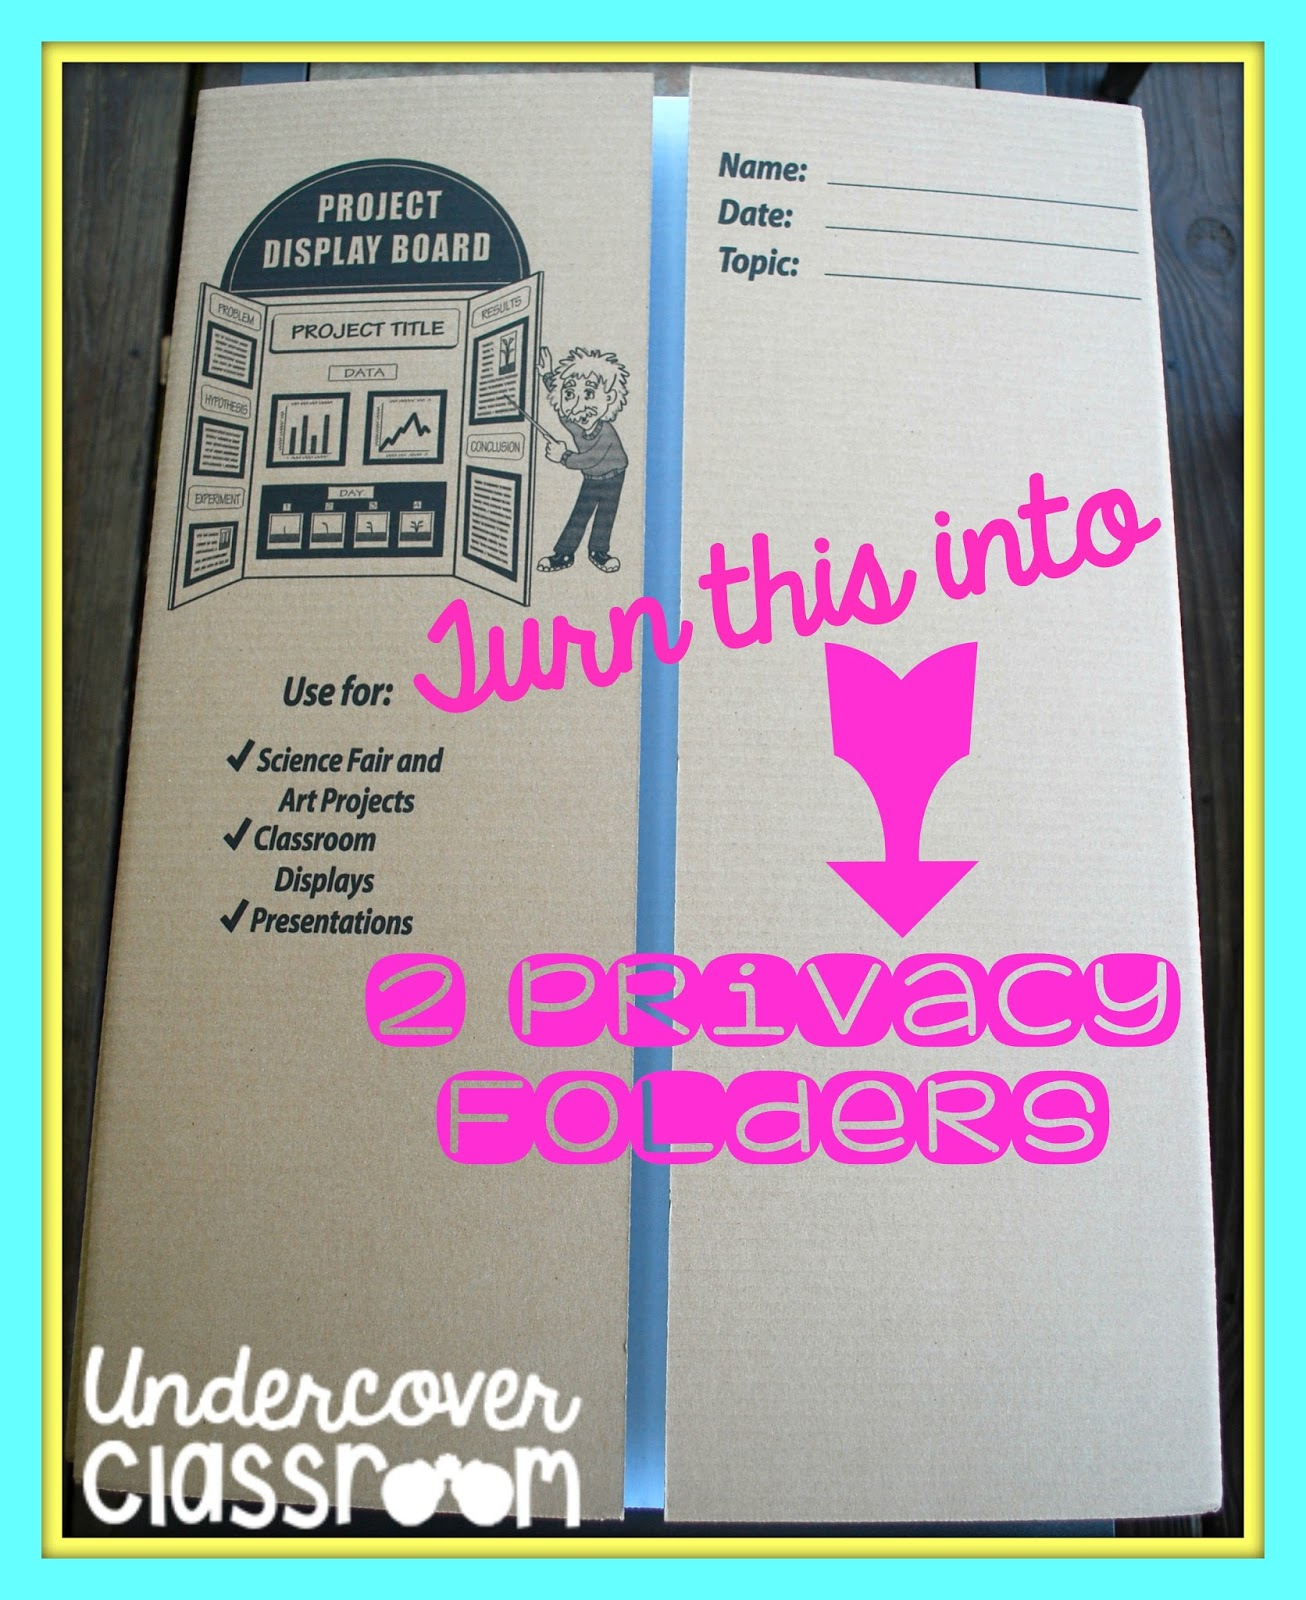 Undercover classroom do it yourself privacy folders do it yourself privacy folders solutioingenieria Image collections